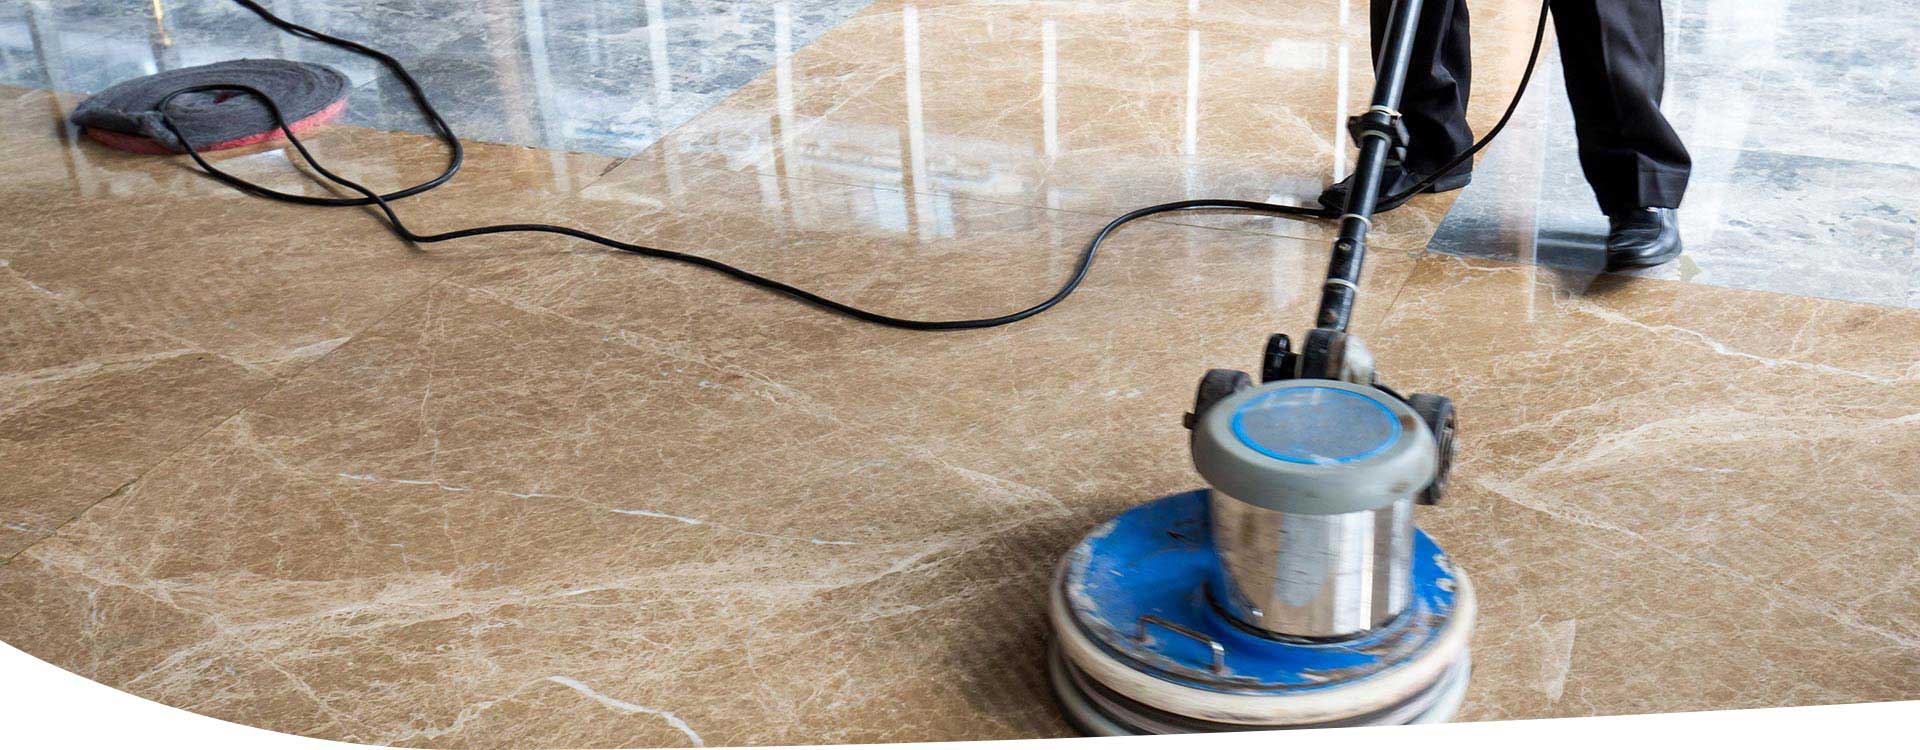 Hotel & Resort Floor Polishing Services in Delhi